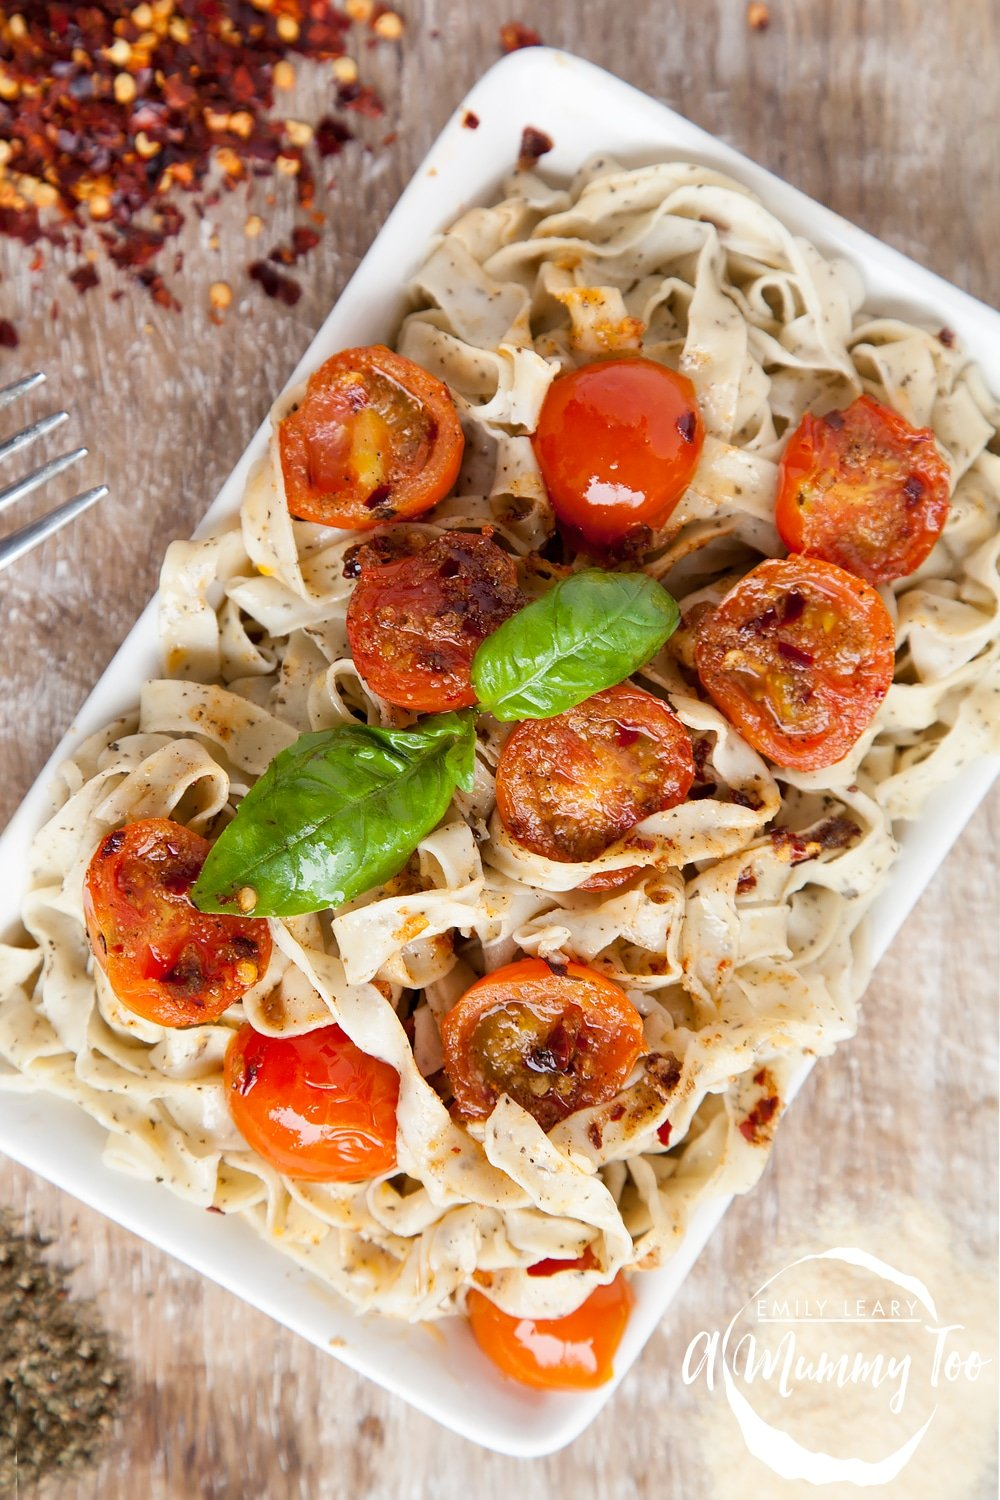 Basil tagliatelle with fiery cherry tomatoes served on a plate